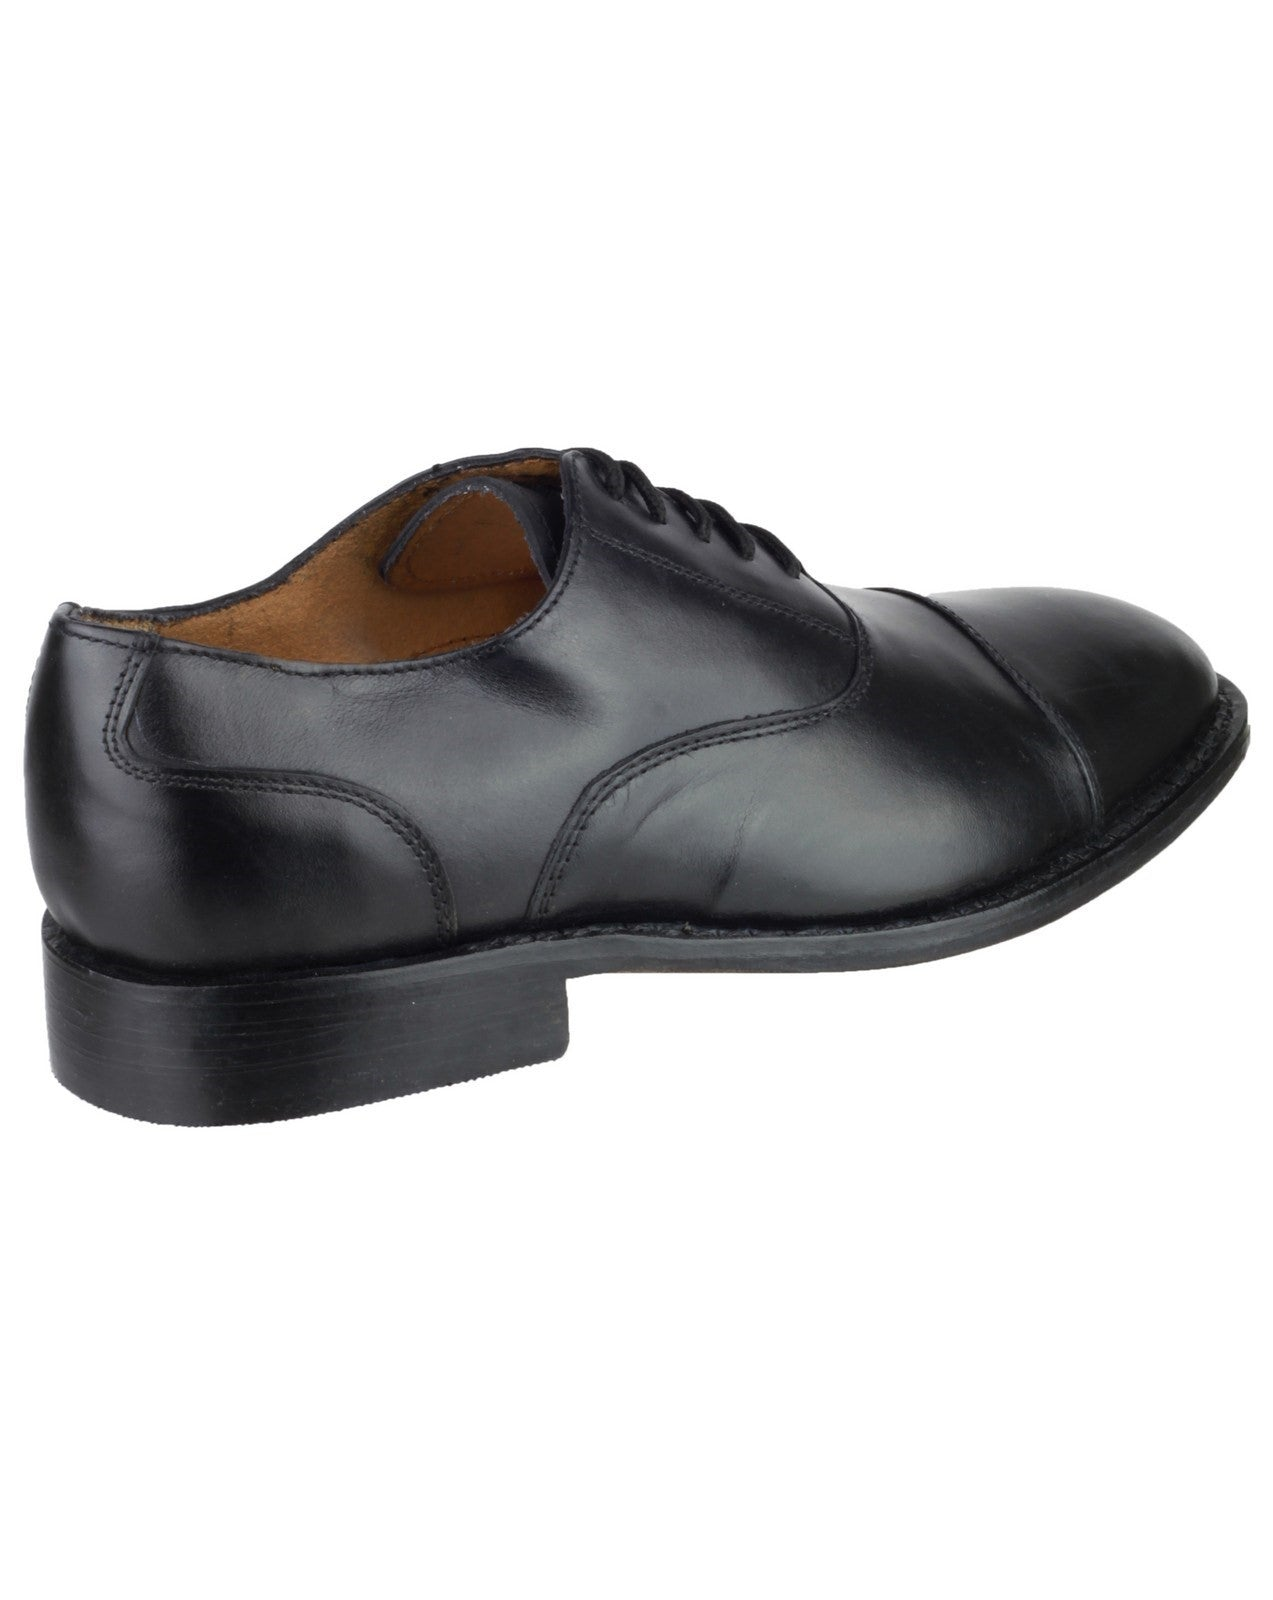 Amblers Men's James Leather Soled Oxford Shoe Black 10874